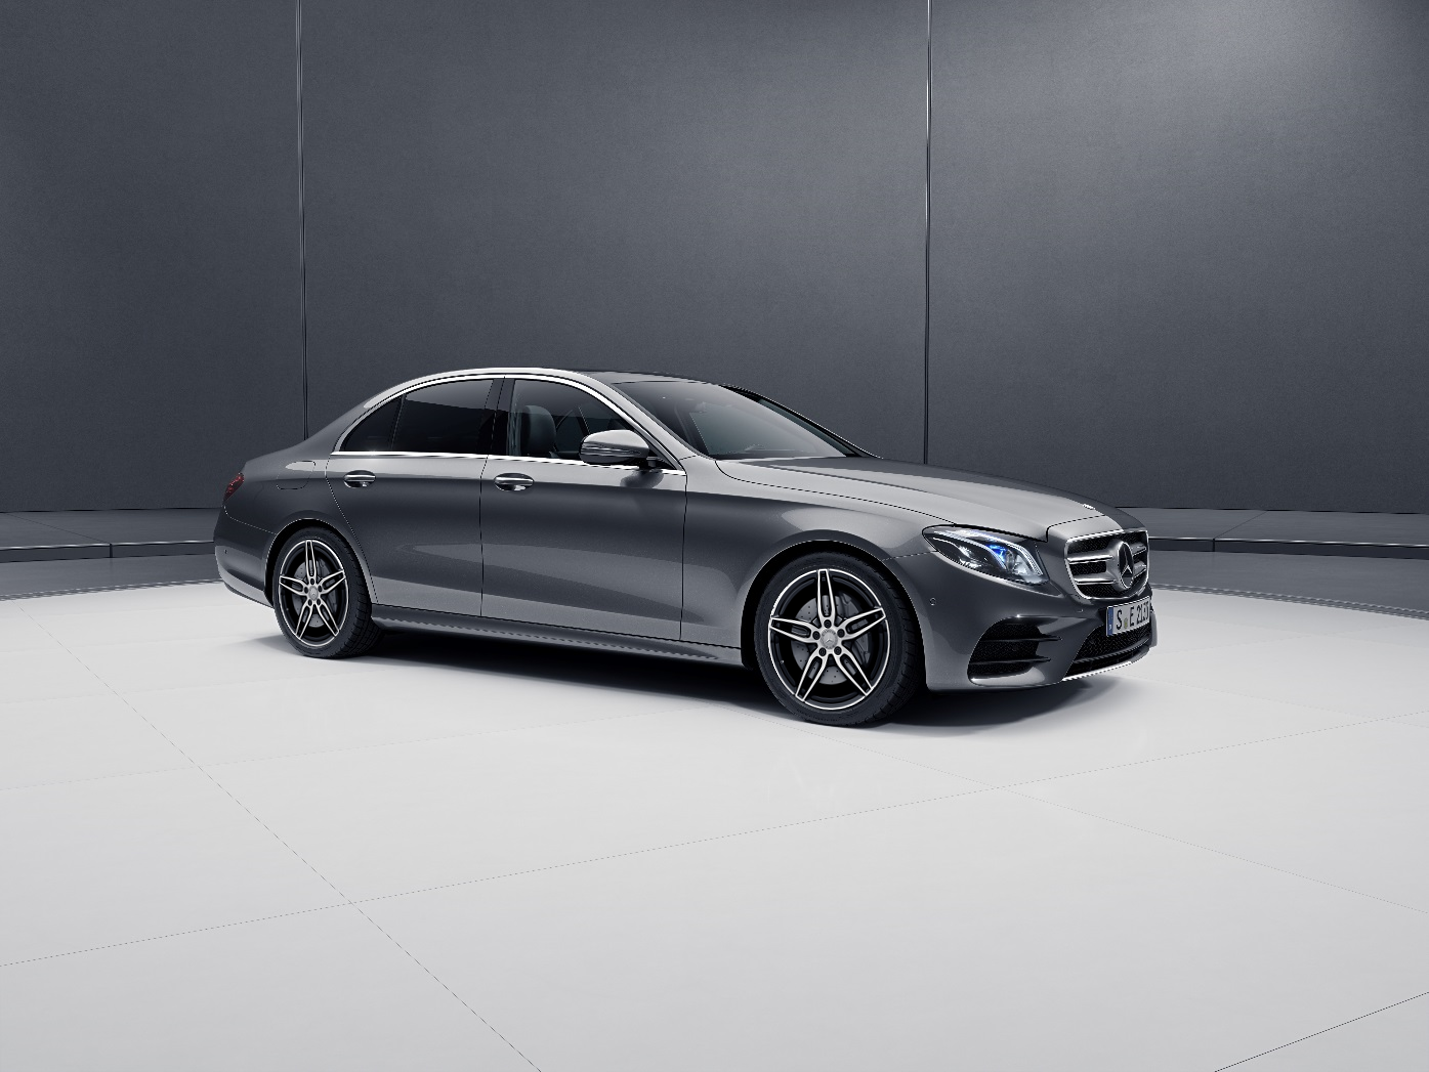 Mercedes Benz Malaysia Launches New Ckd E Class Range With 3 Variants News And Reviews On Malaysian Cars Motorcycles And Automotive Lifestyle